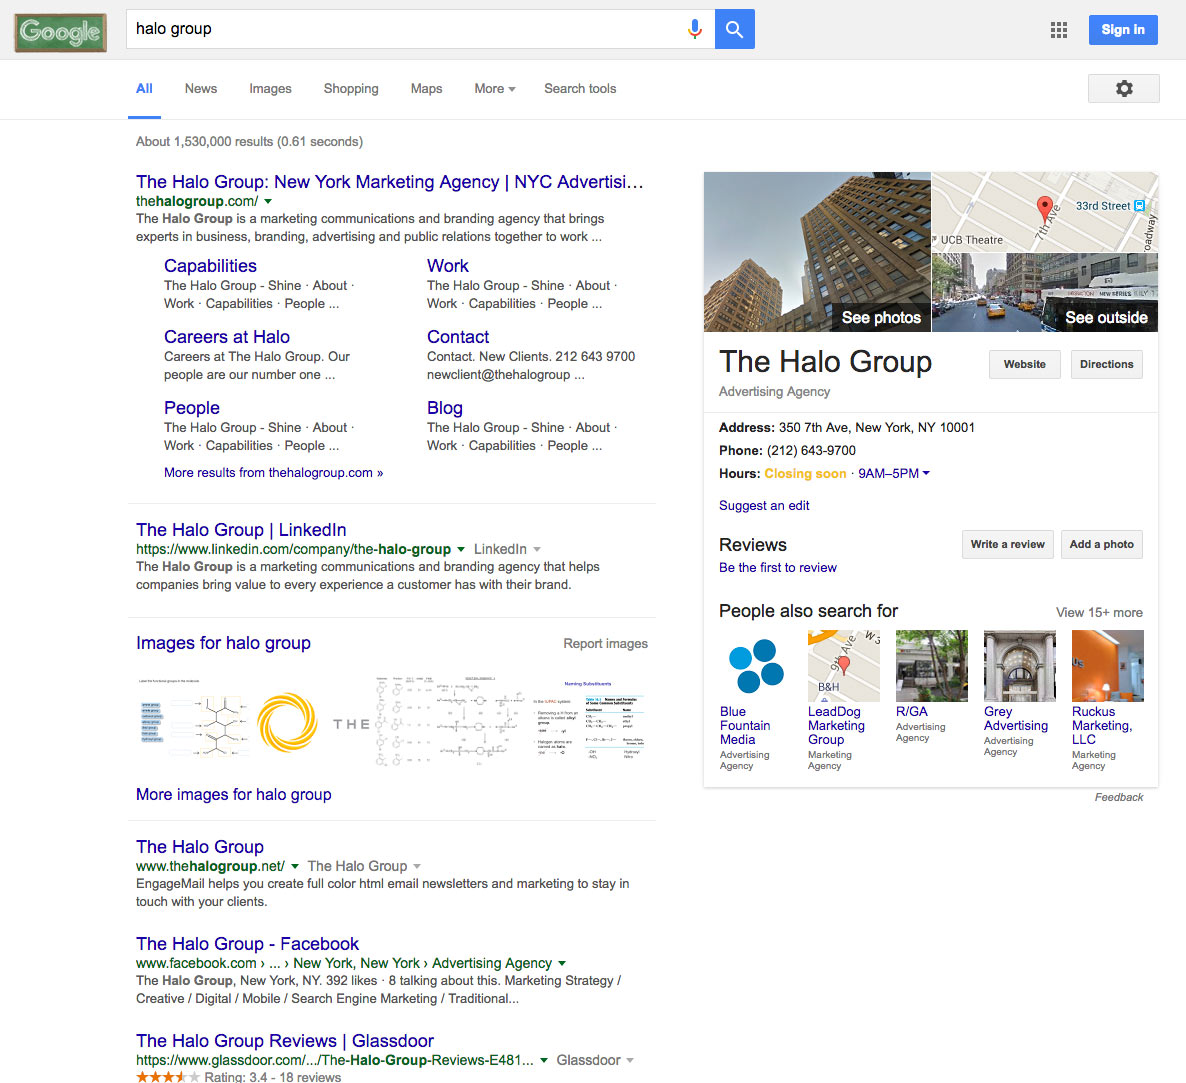 Anatomy of a Google Search Engine Results Page (SERP) - New York ...